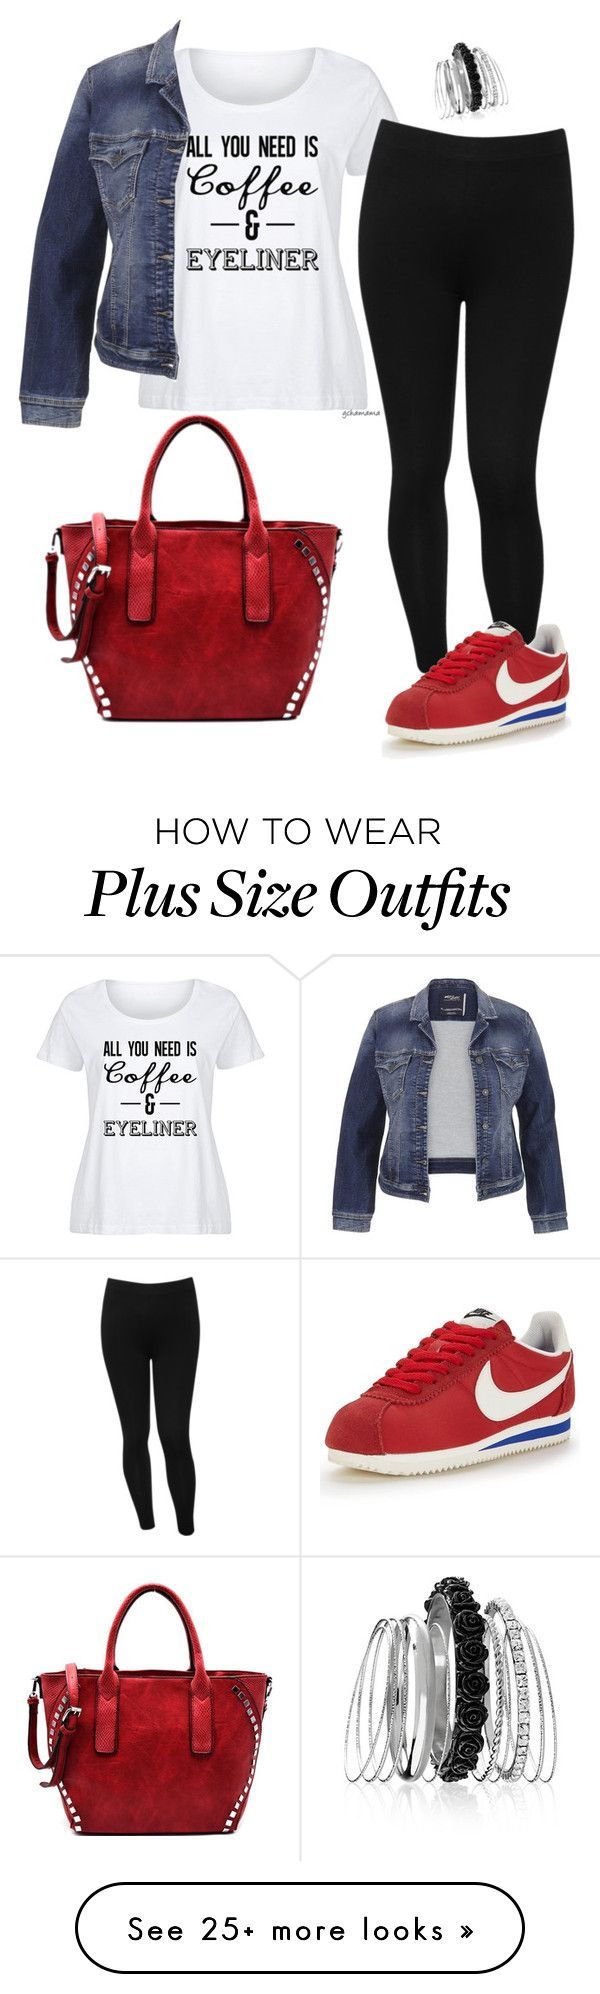 """""""Wake up, makeup- plus size"""" by gchamama on Polyvore featuring LC Trendz, M&Co, maurices, Avenue, NIKE and plus size clothing"""